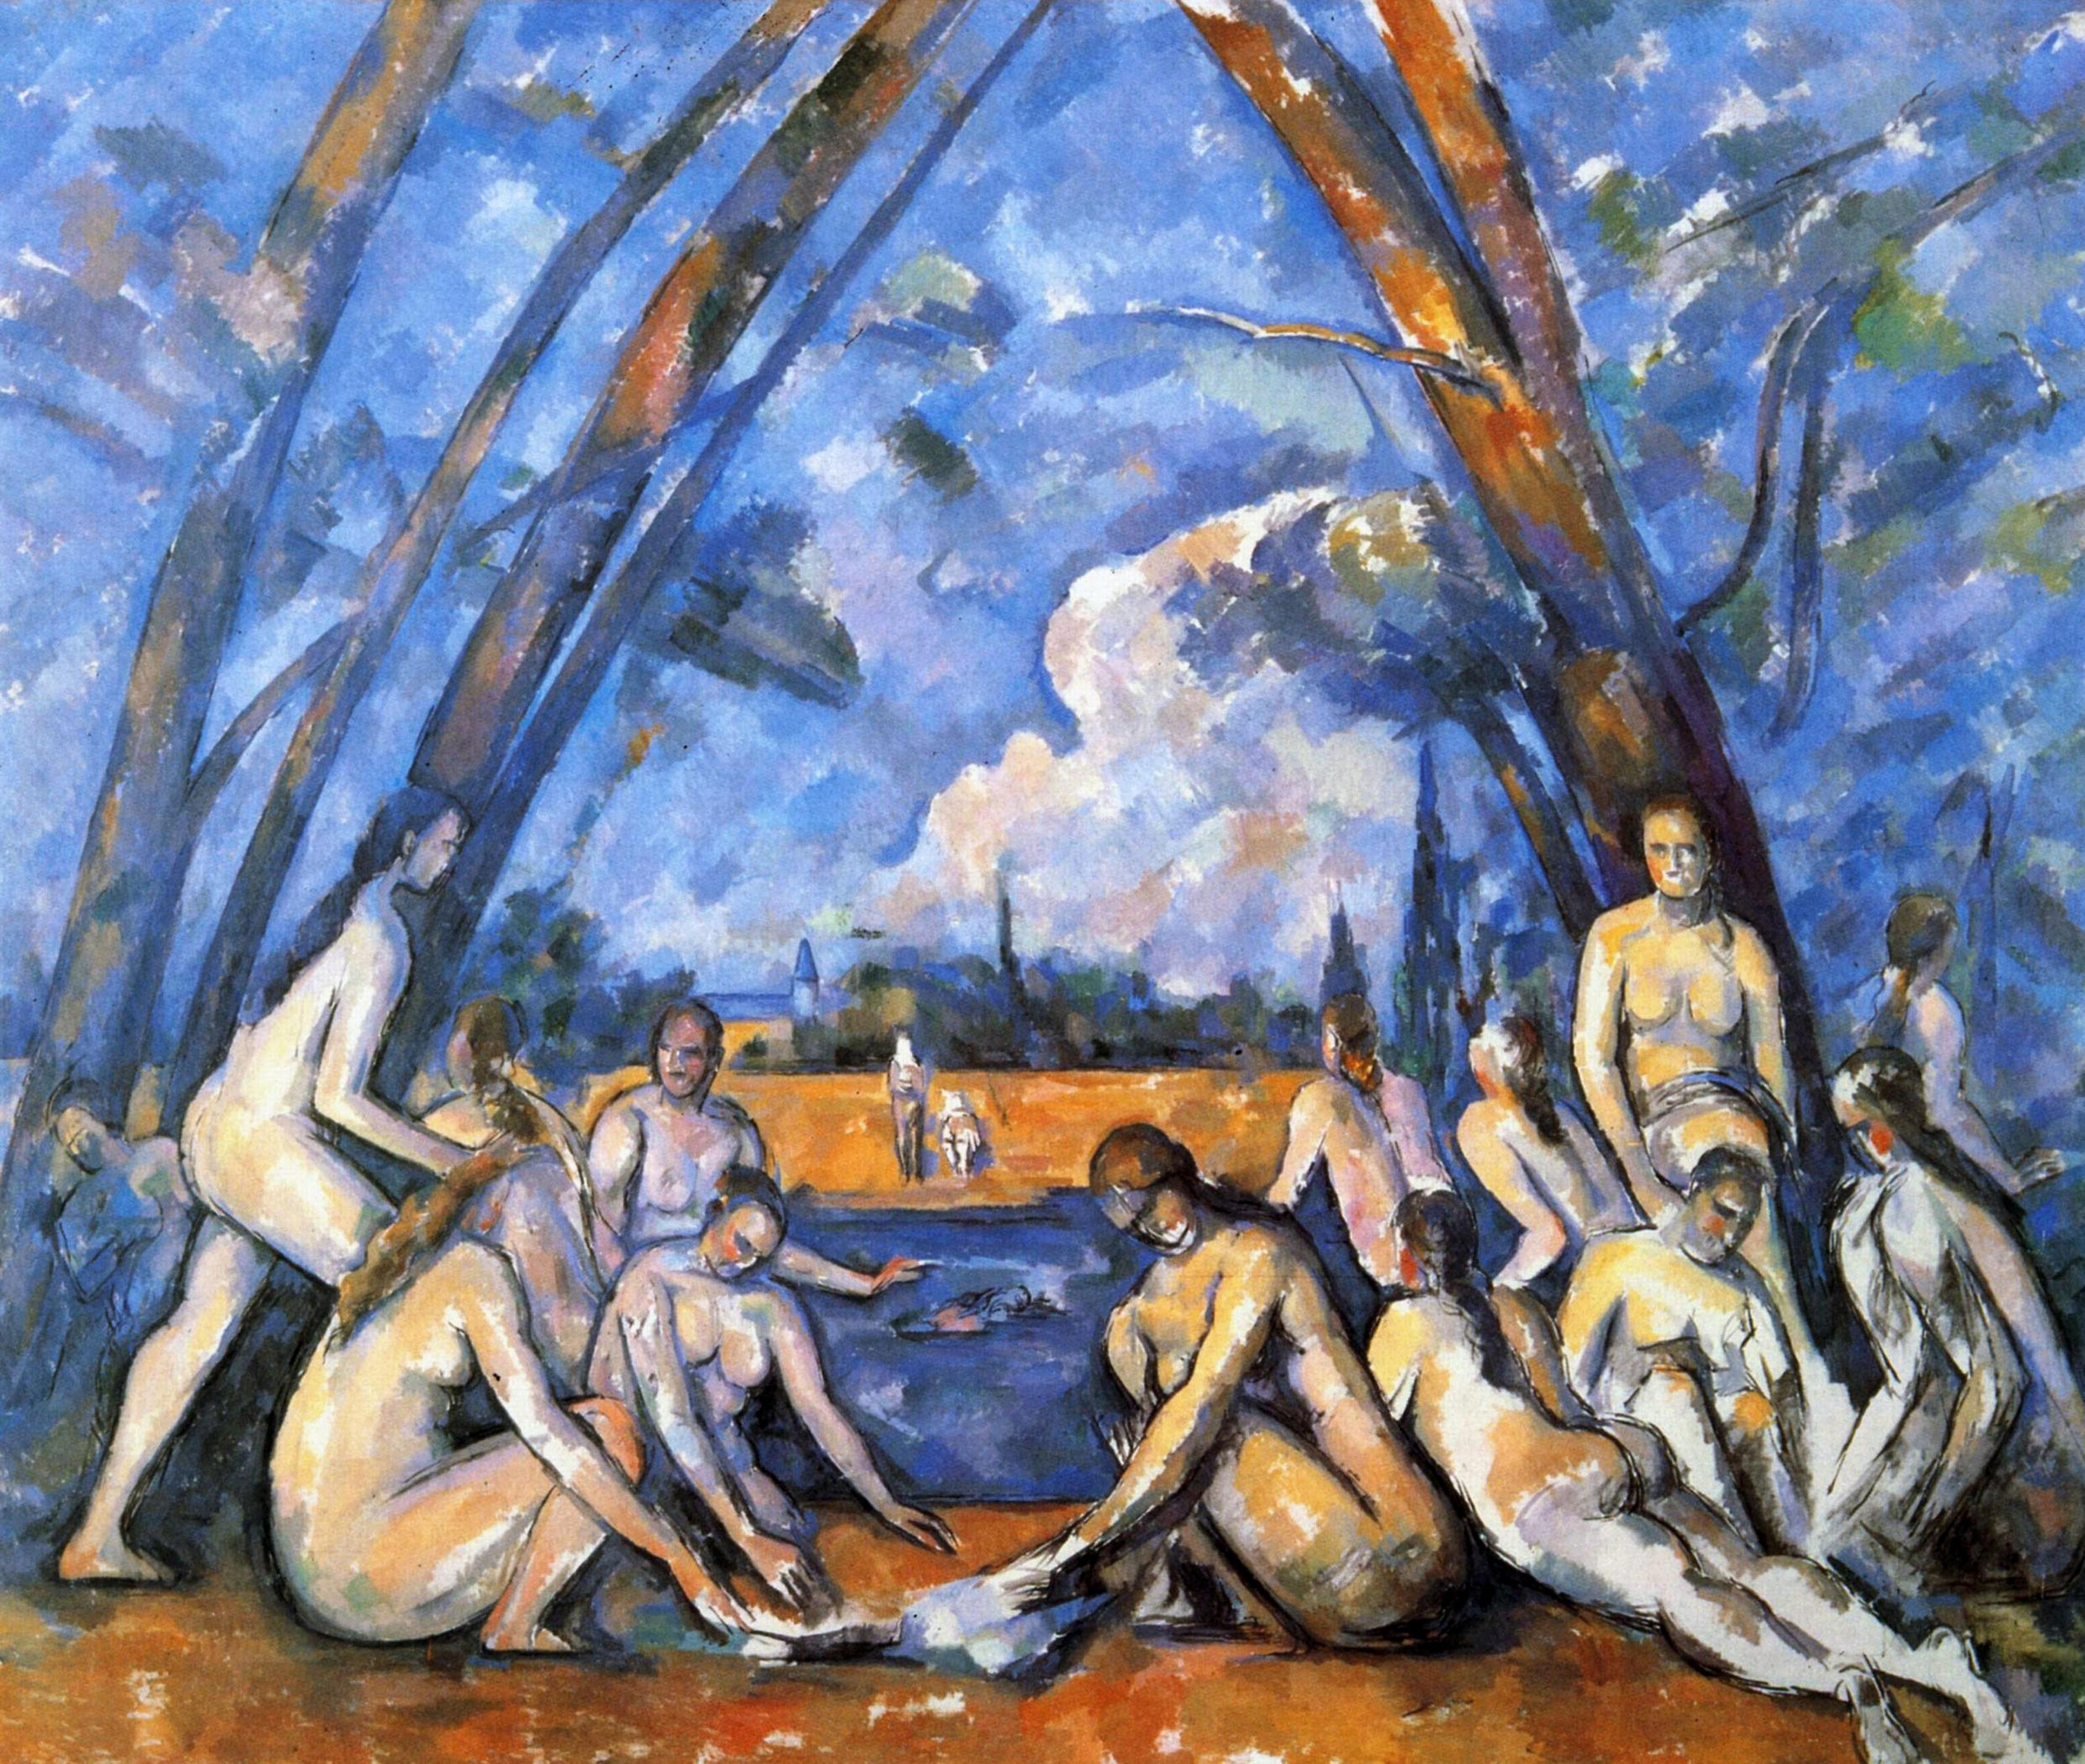 Les Grandes Baigneuses' (The Bathers), first exhibited in 1906. Largest of 'Bathers' series.